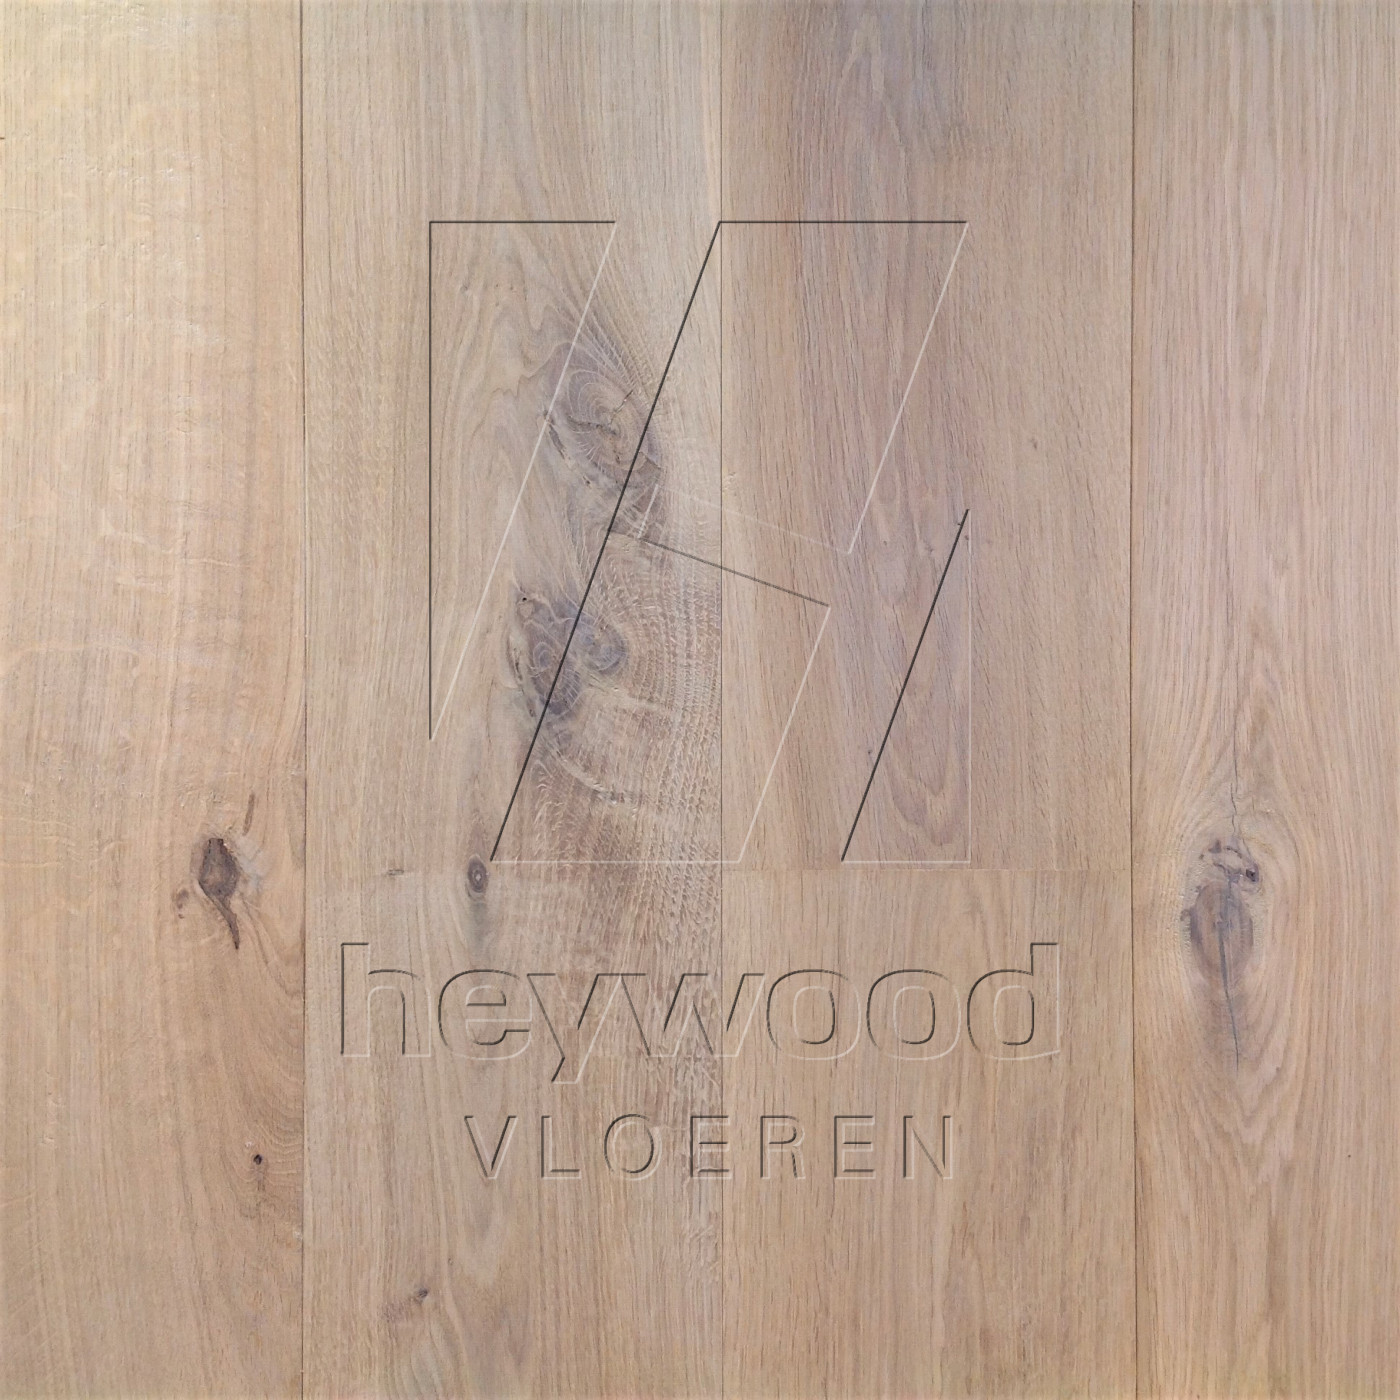 Plank Luzern in European Oak Character of Bespoke Wooden Floors